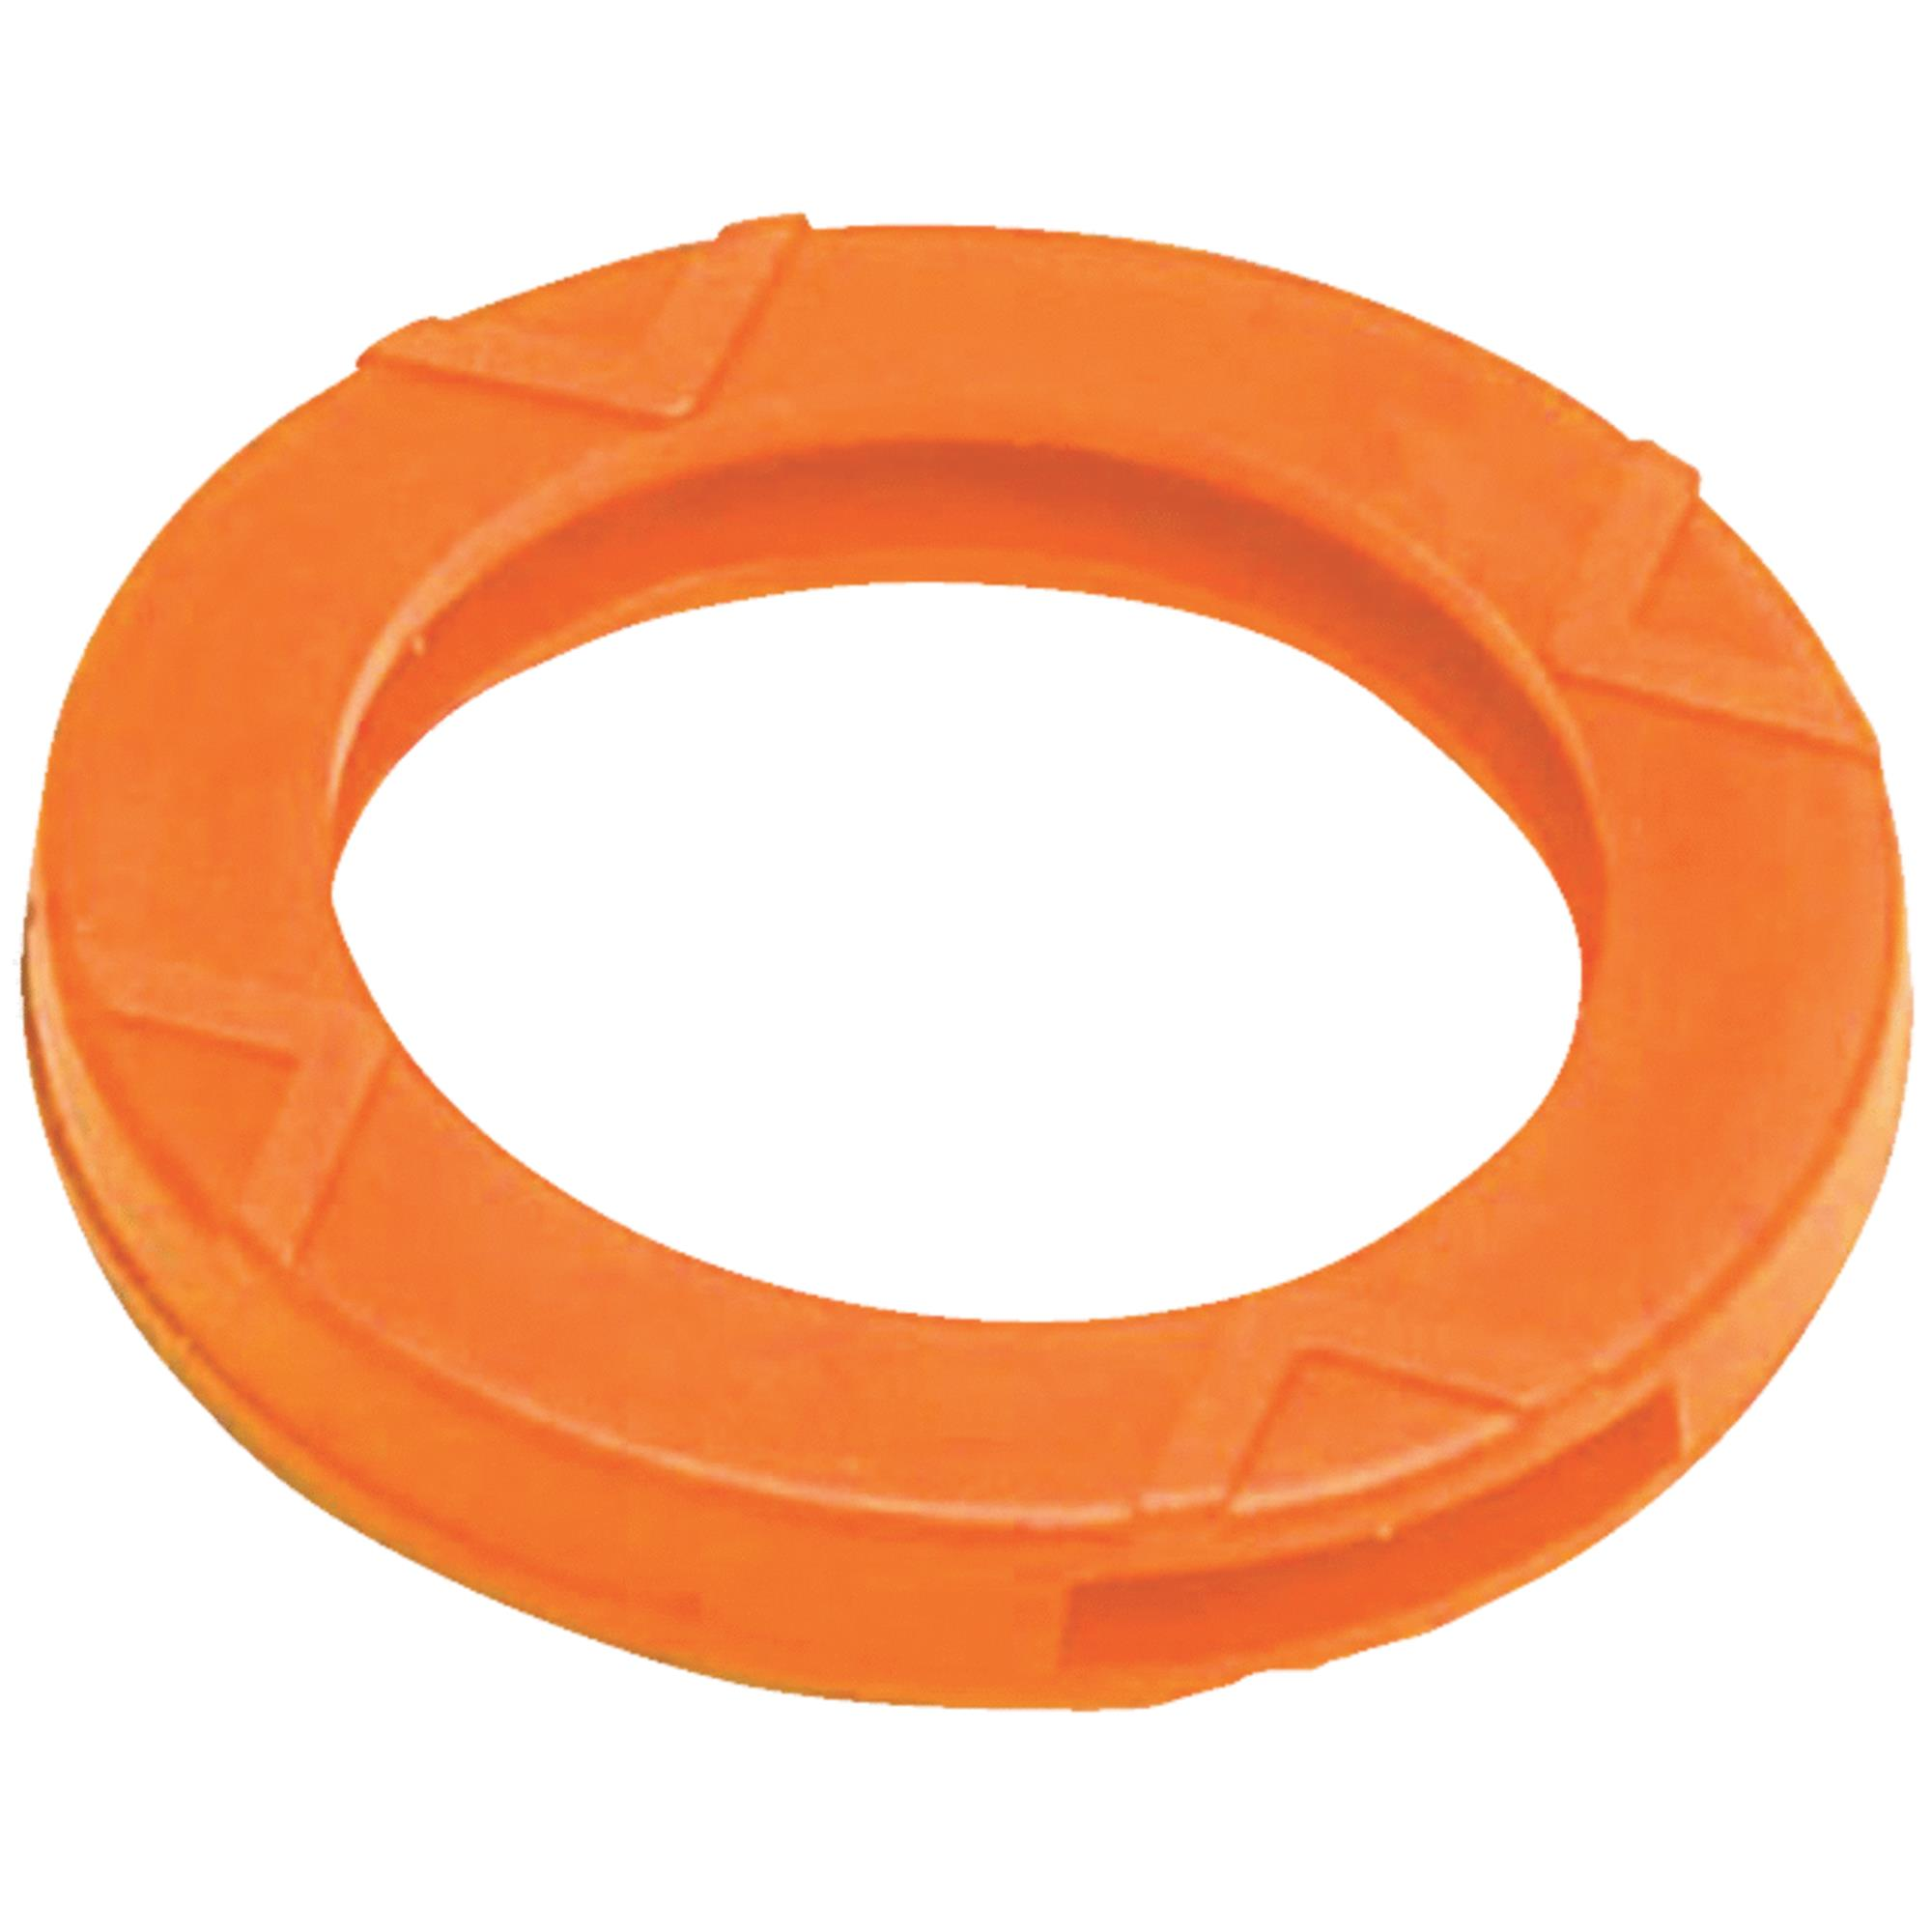 Key Identifier Ring